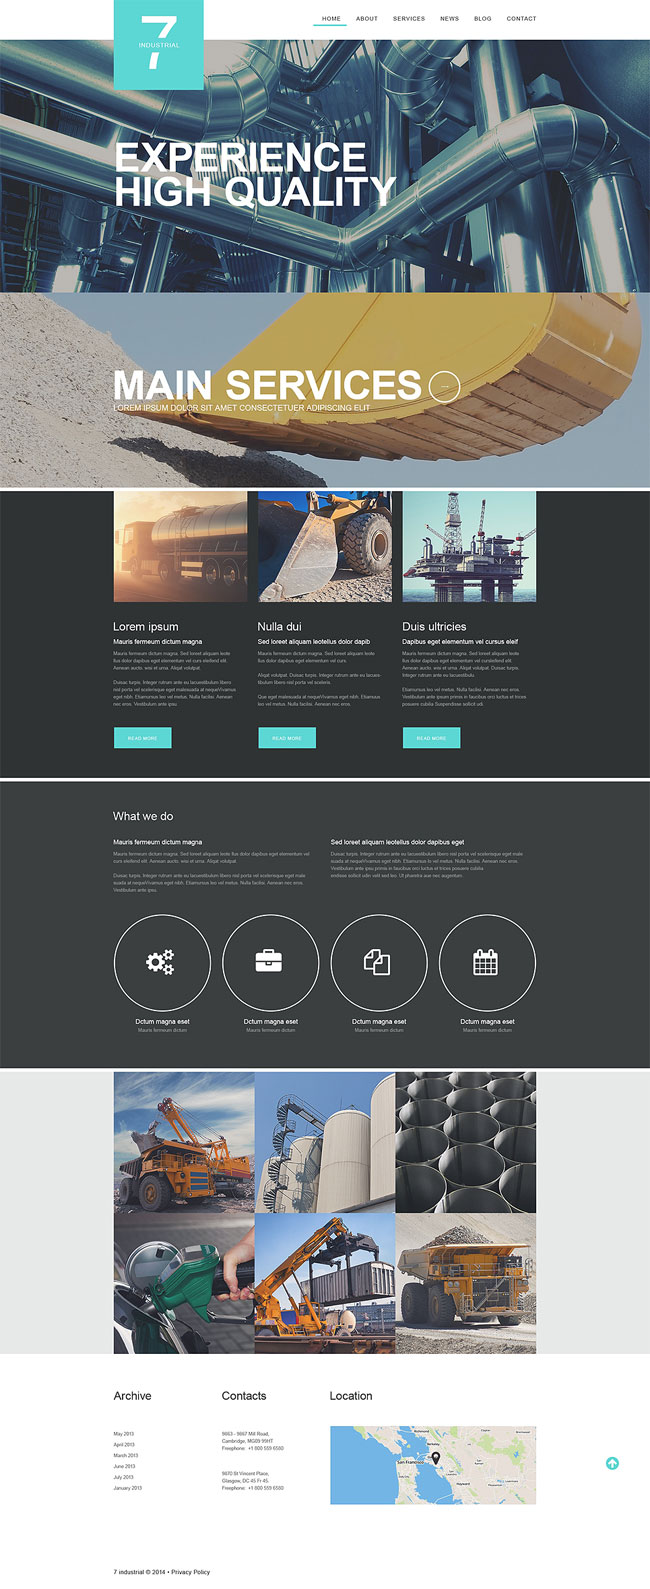 15+ Best Themes for Industrial Business 2018 - DesignMaz